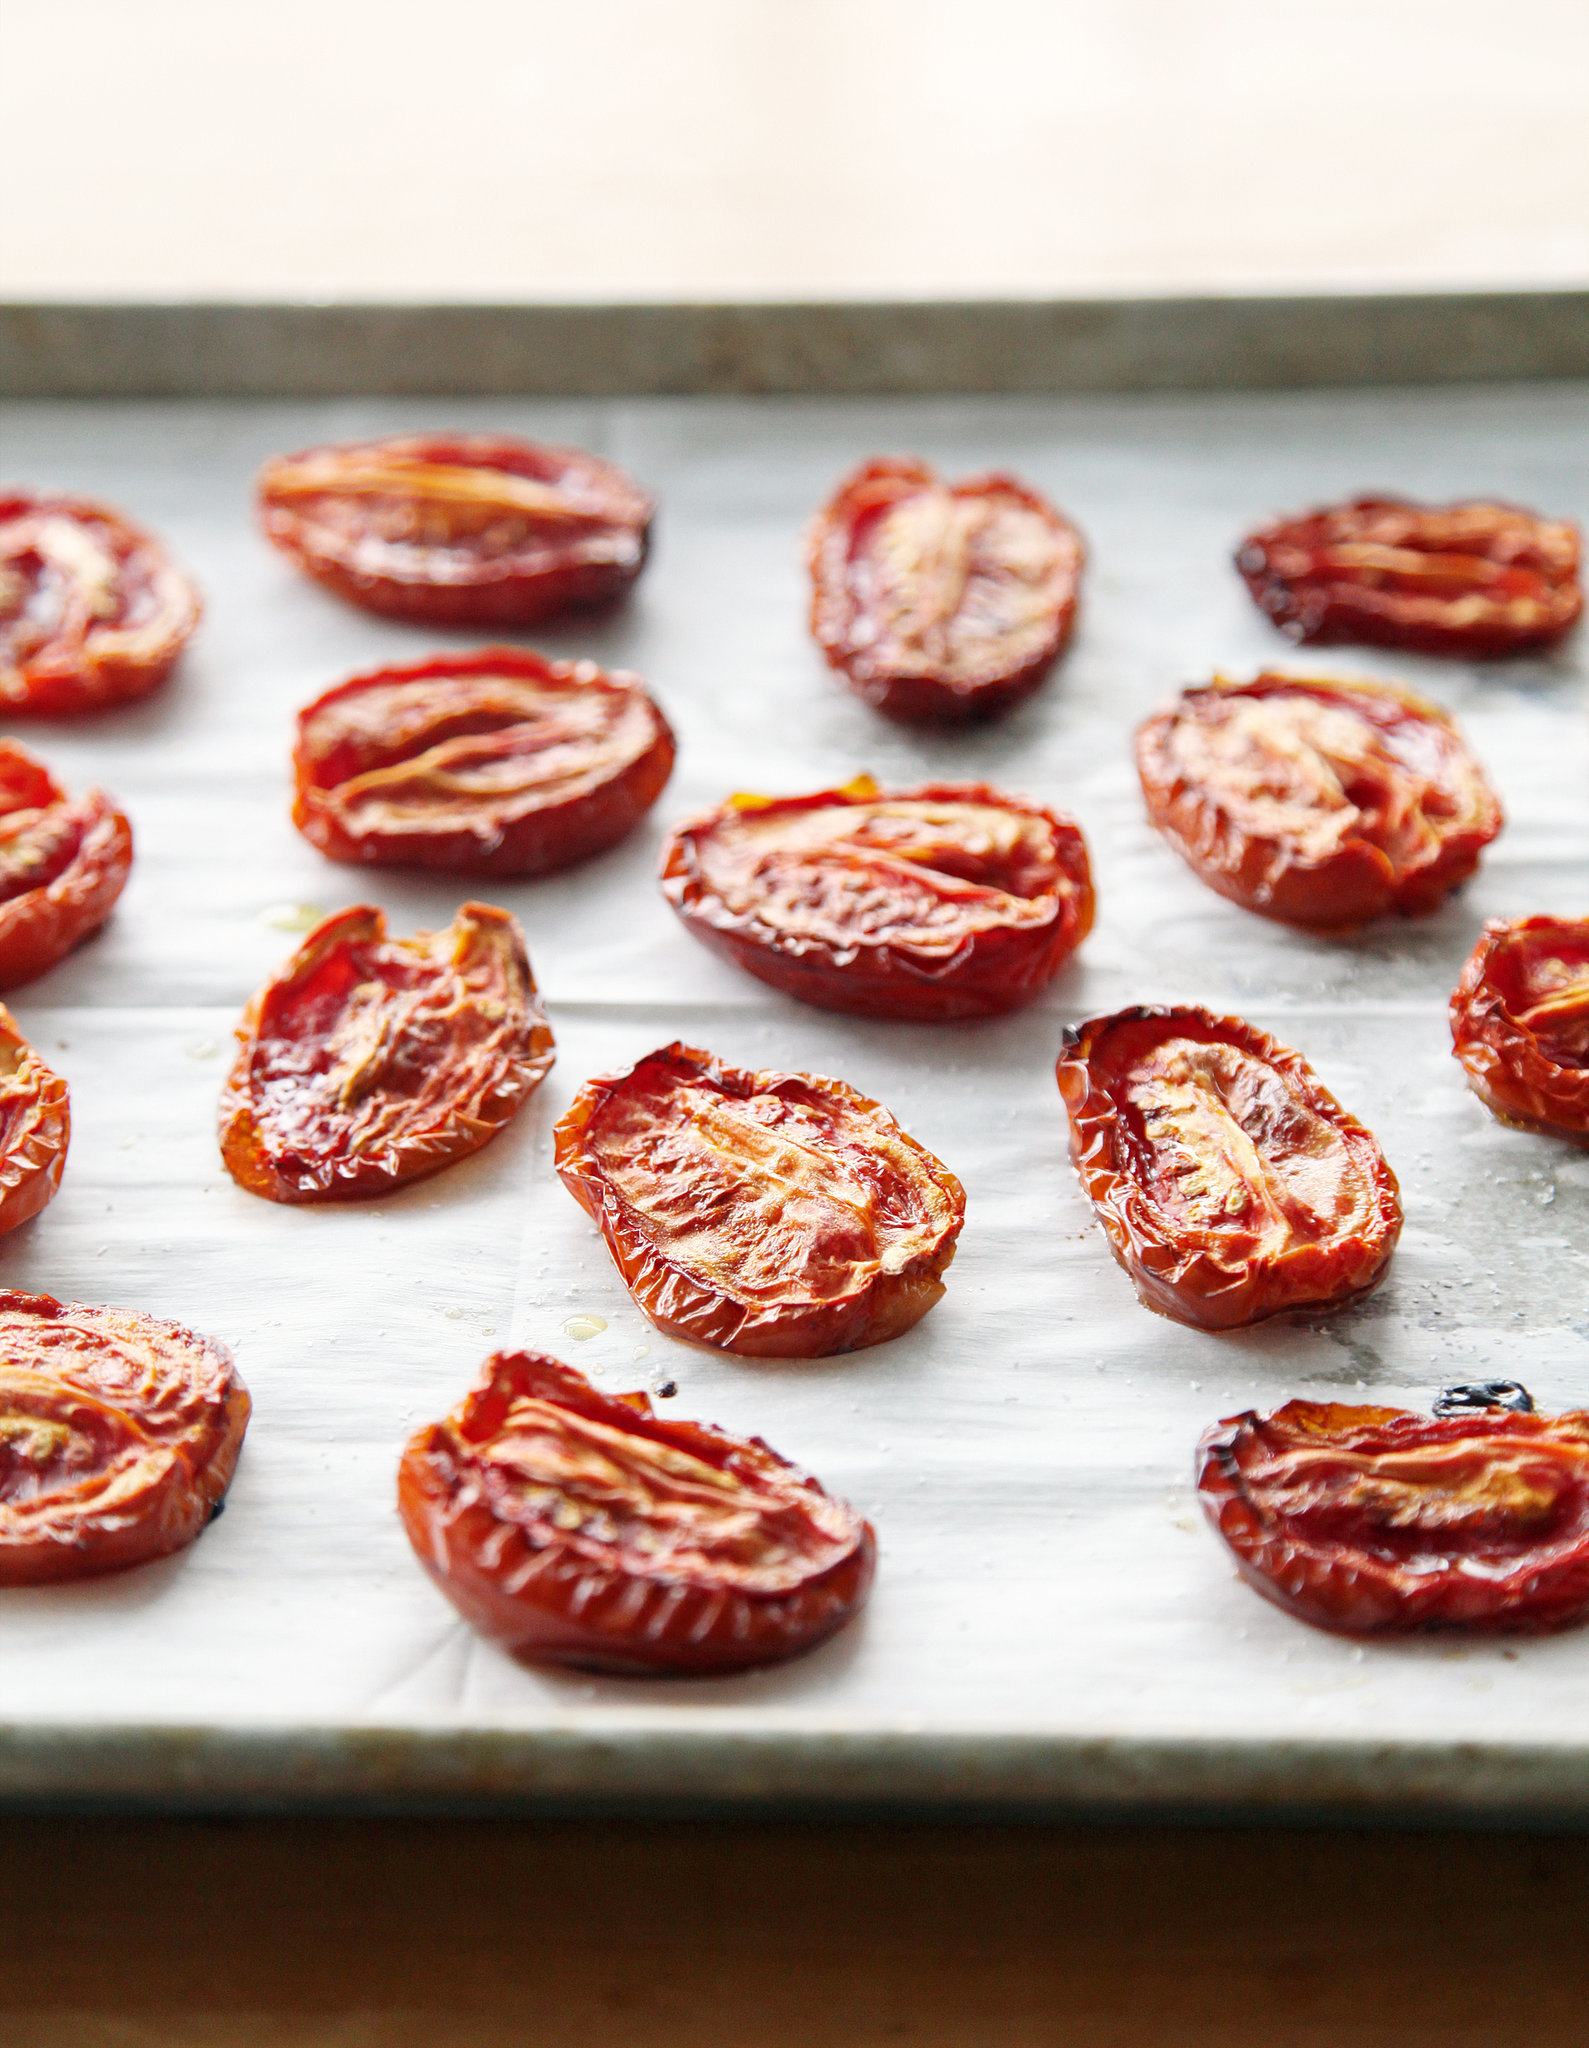 Slow-Roasted Tomatoes Recipe | POPSUGAR Food